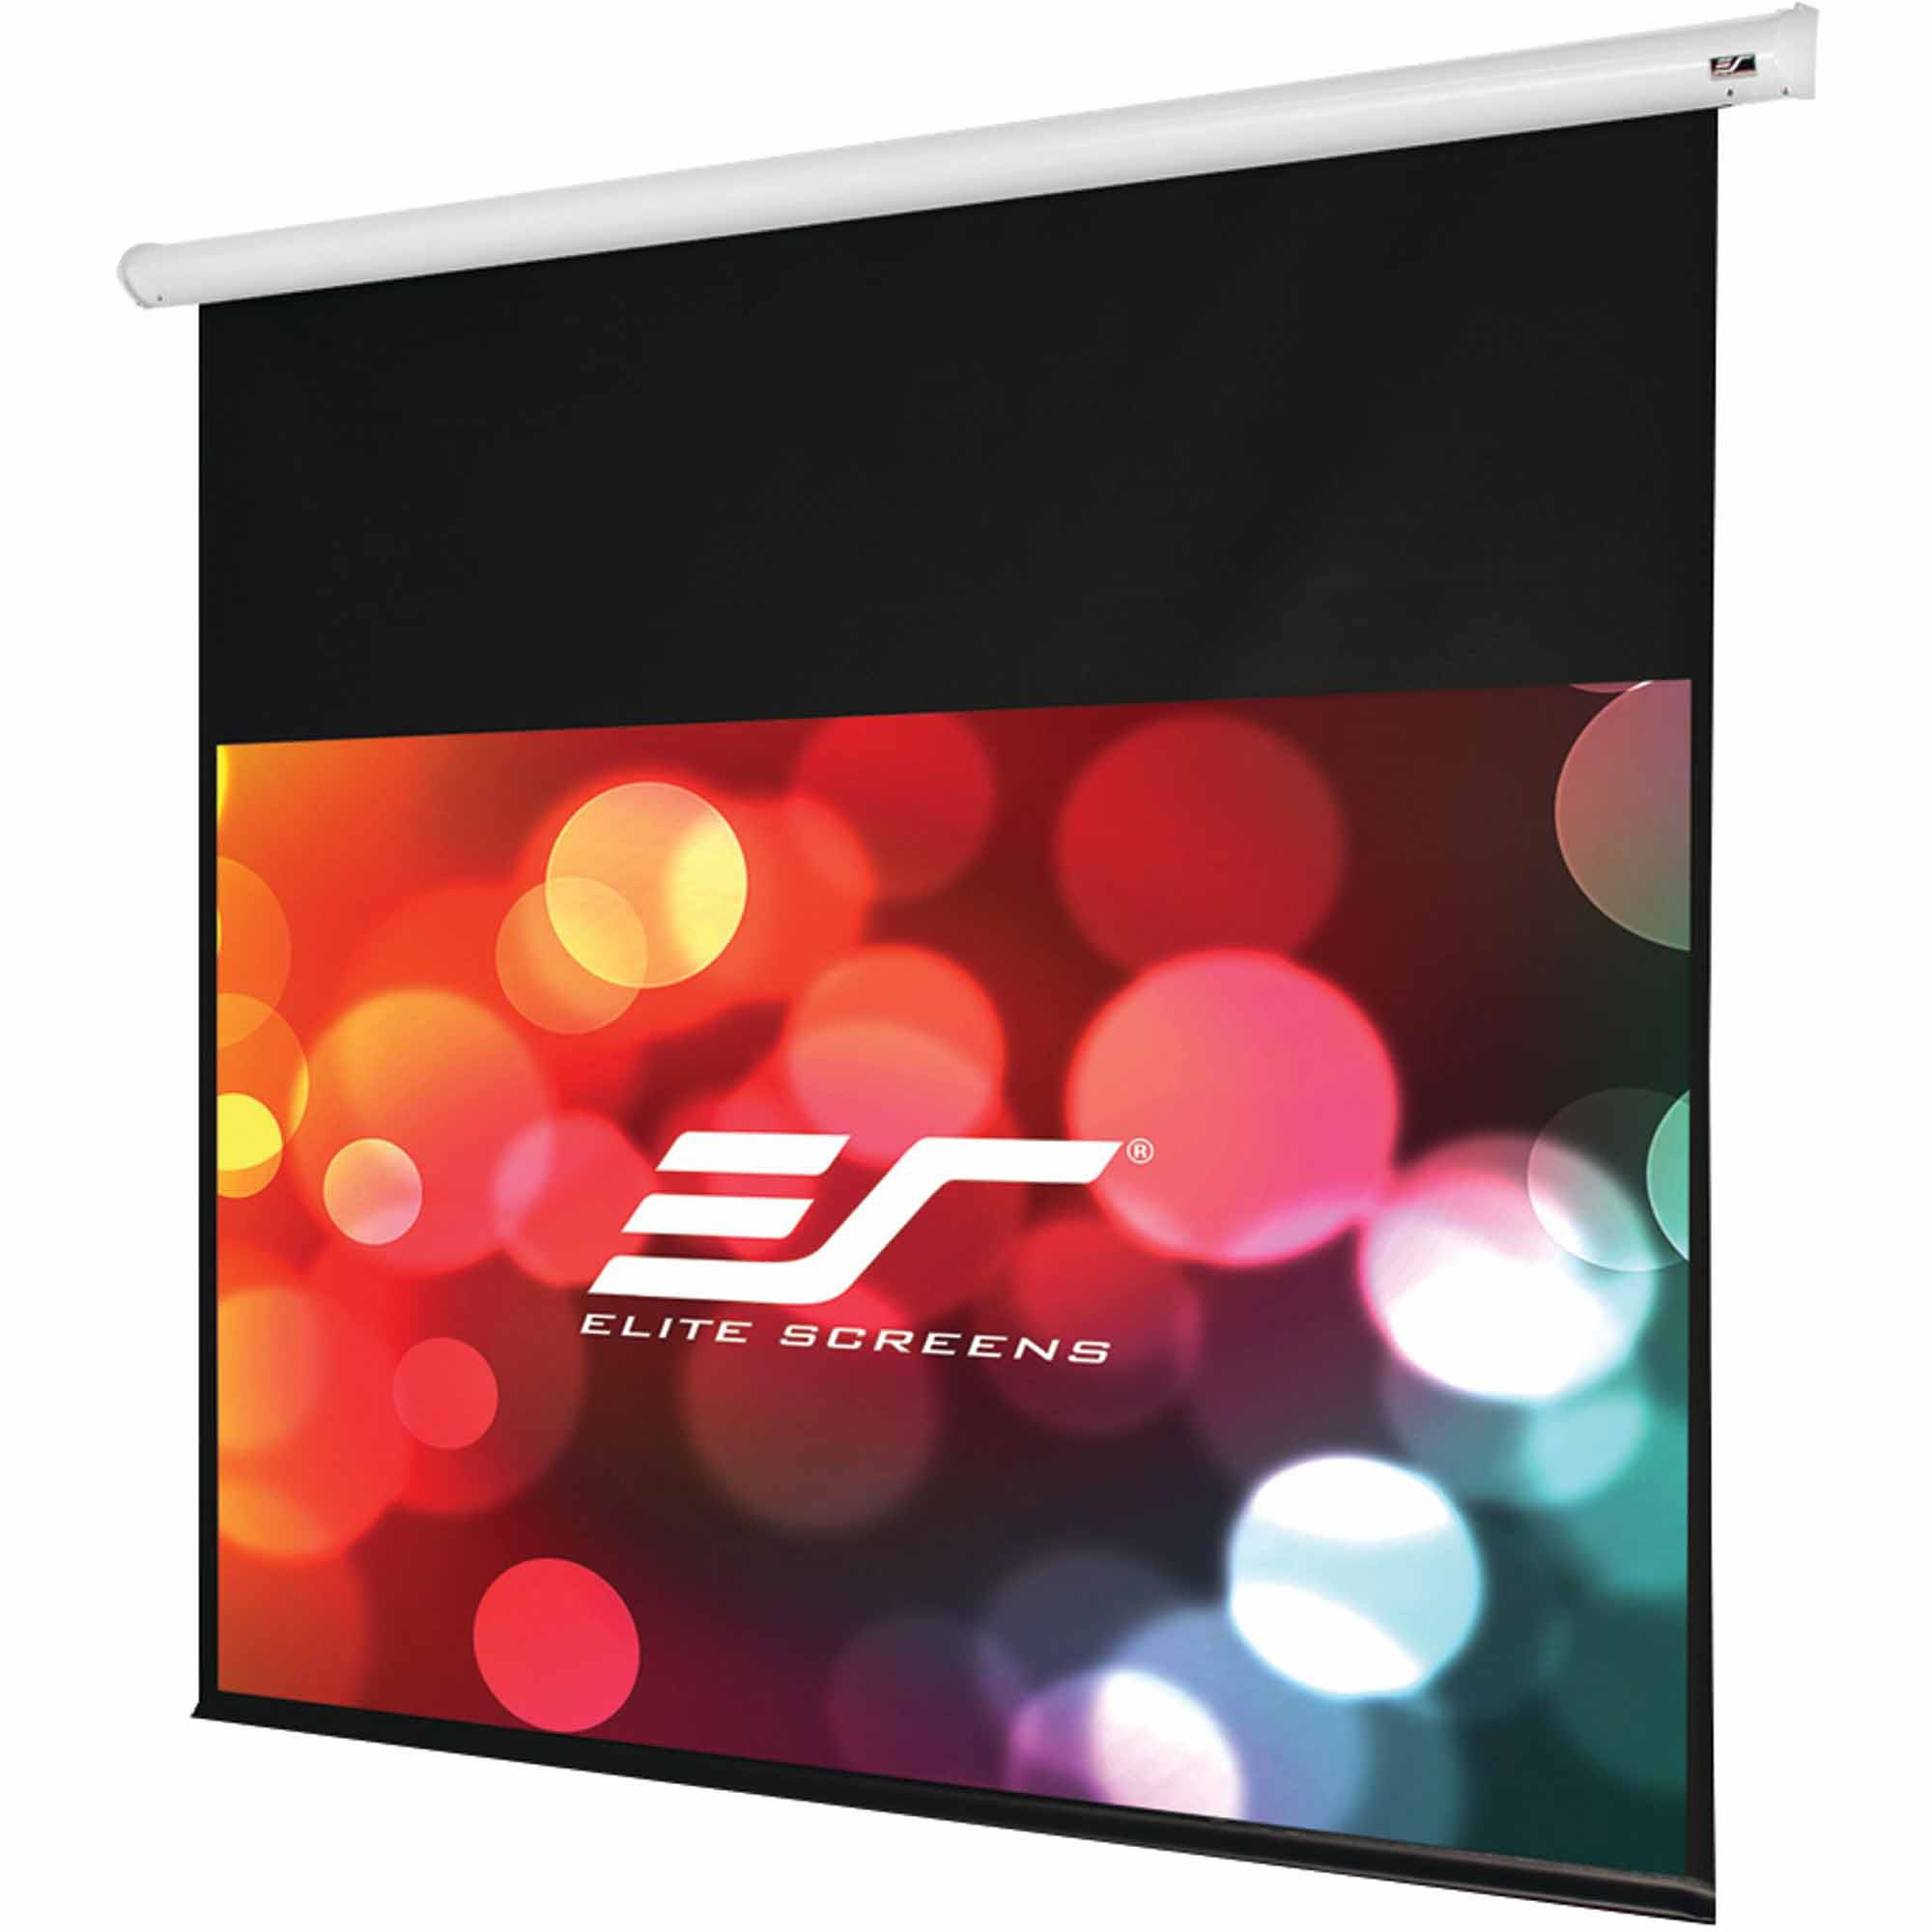 Elite Screens ST135XWH-E6 Starling Series Electric Screen, White